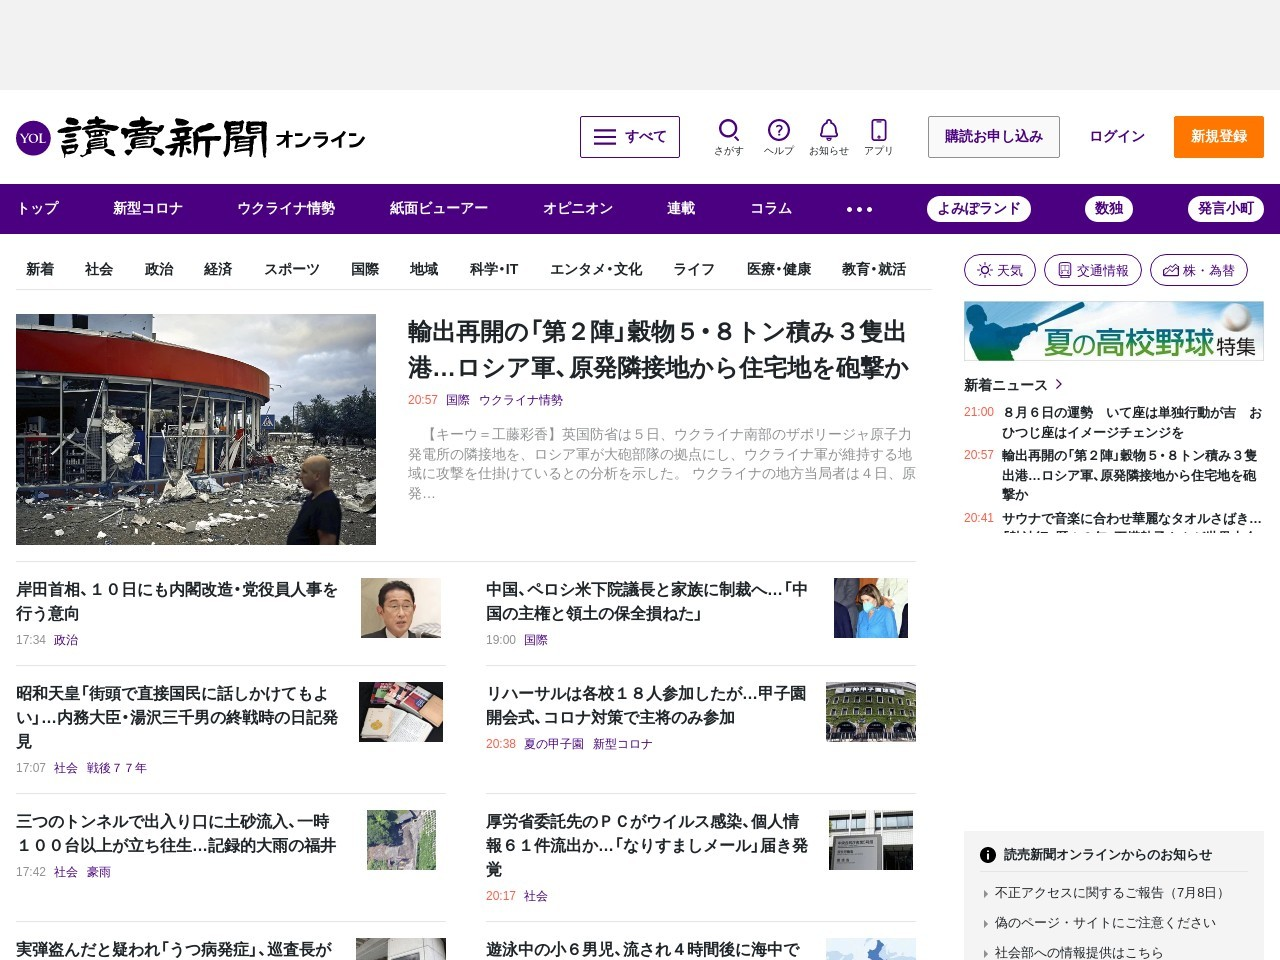 http://www.yomiuri.co.jp/homeguide/sumu/20130408-OYT8T00523.htm?cx_thumbnail=09&from=yolsp